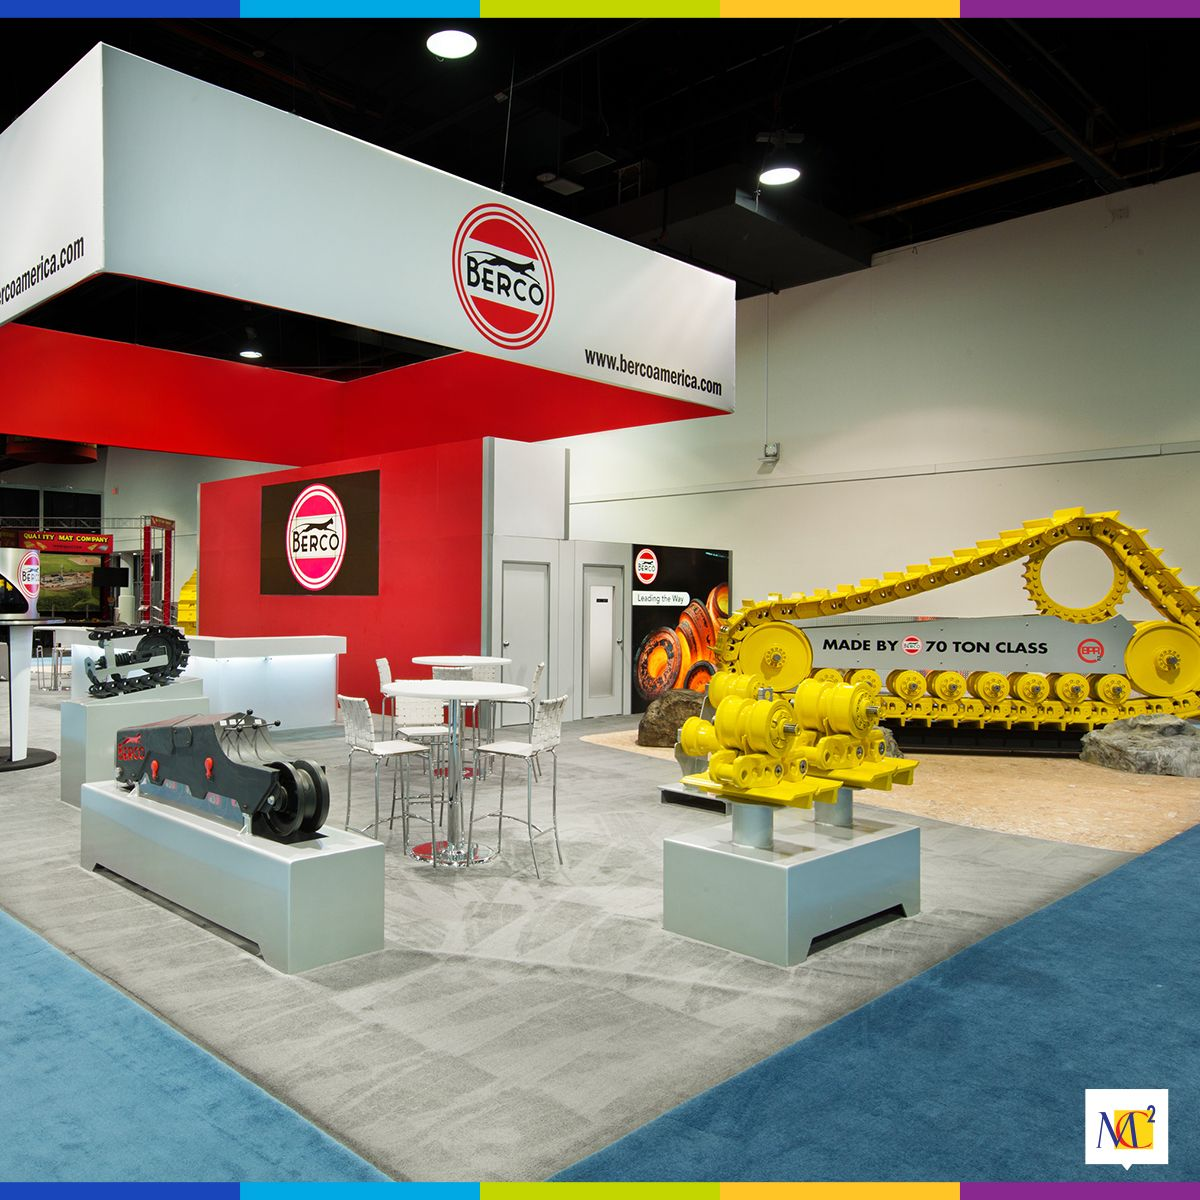 MC2 designed Berco's exhibit at #ConExpo 2017 in Las Vegas. Our design positioned Berco as the undercarriage reference point in the field of mining and construction equipment. #MC2 #brand #experience #showcase #innovation #brandexperience #brandexhibit #displaydesign #eventmarketing #eventprofs #tradeshowexhibit #Berco #showcase #interactive